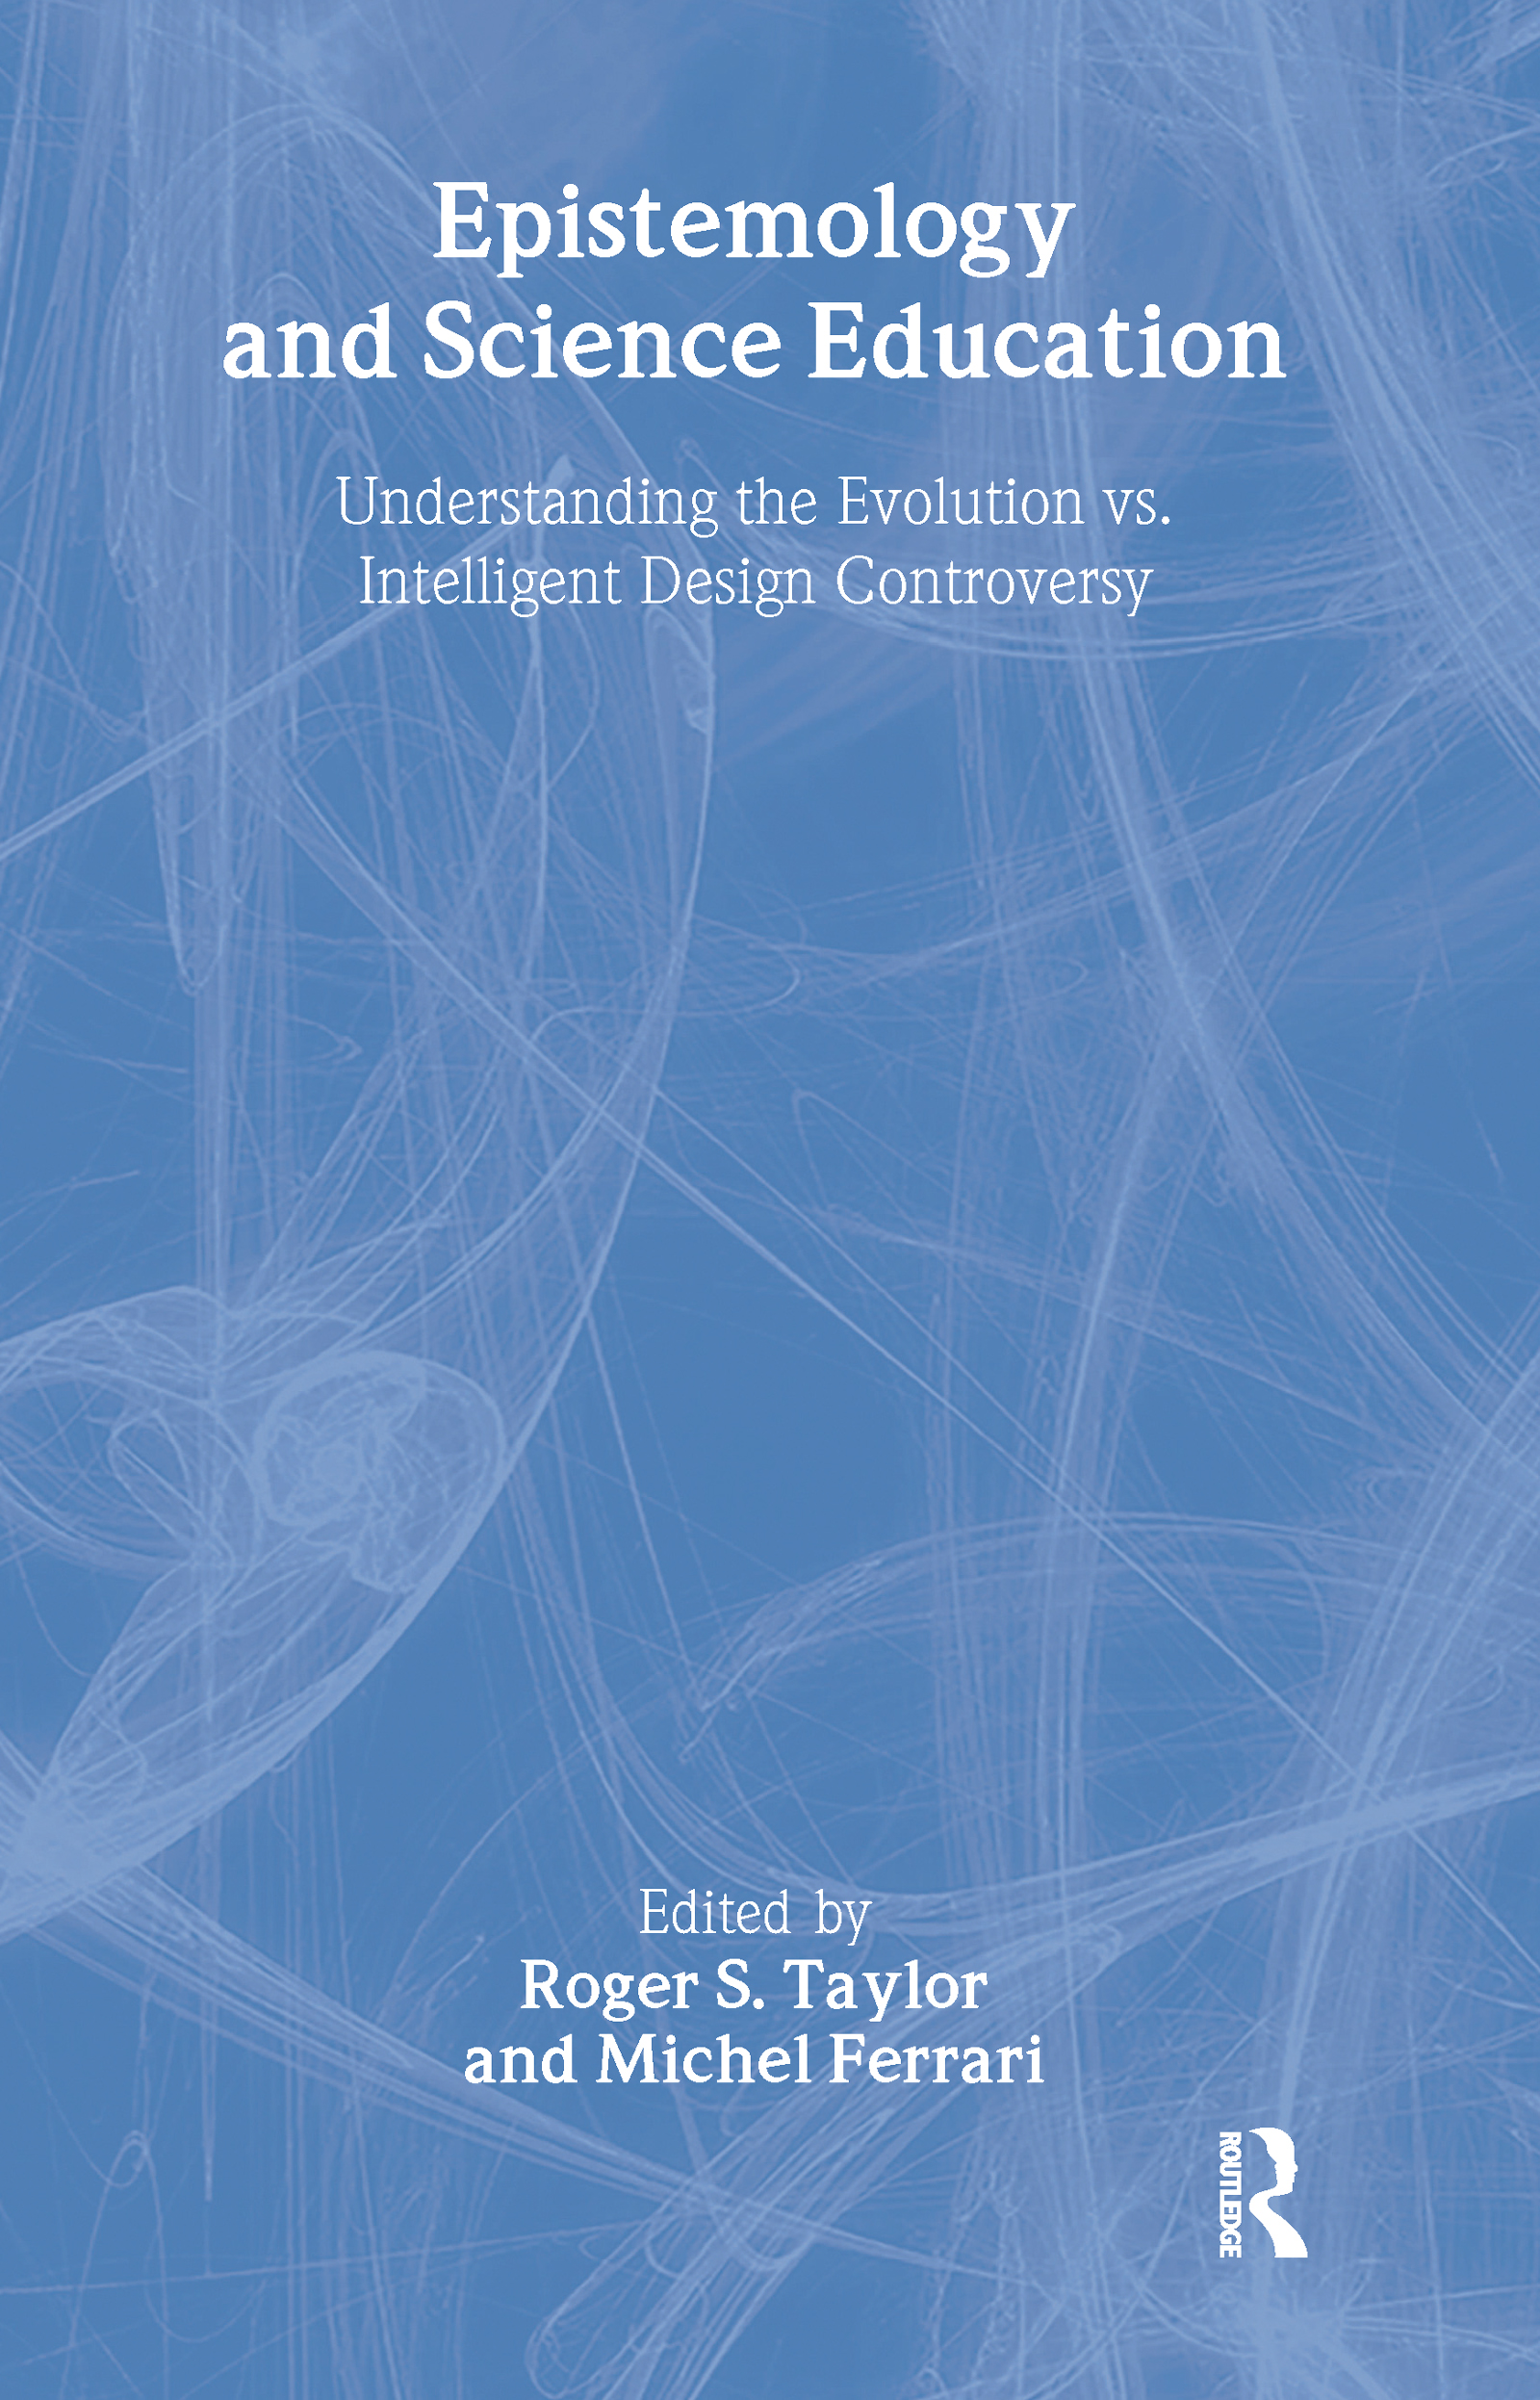 Epistemology and Science Education: Understanding the Evolution vs. Intelligent Design Controversy, 1st Edition (Paperback) book cover